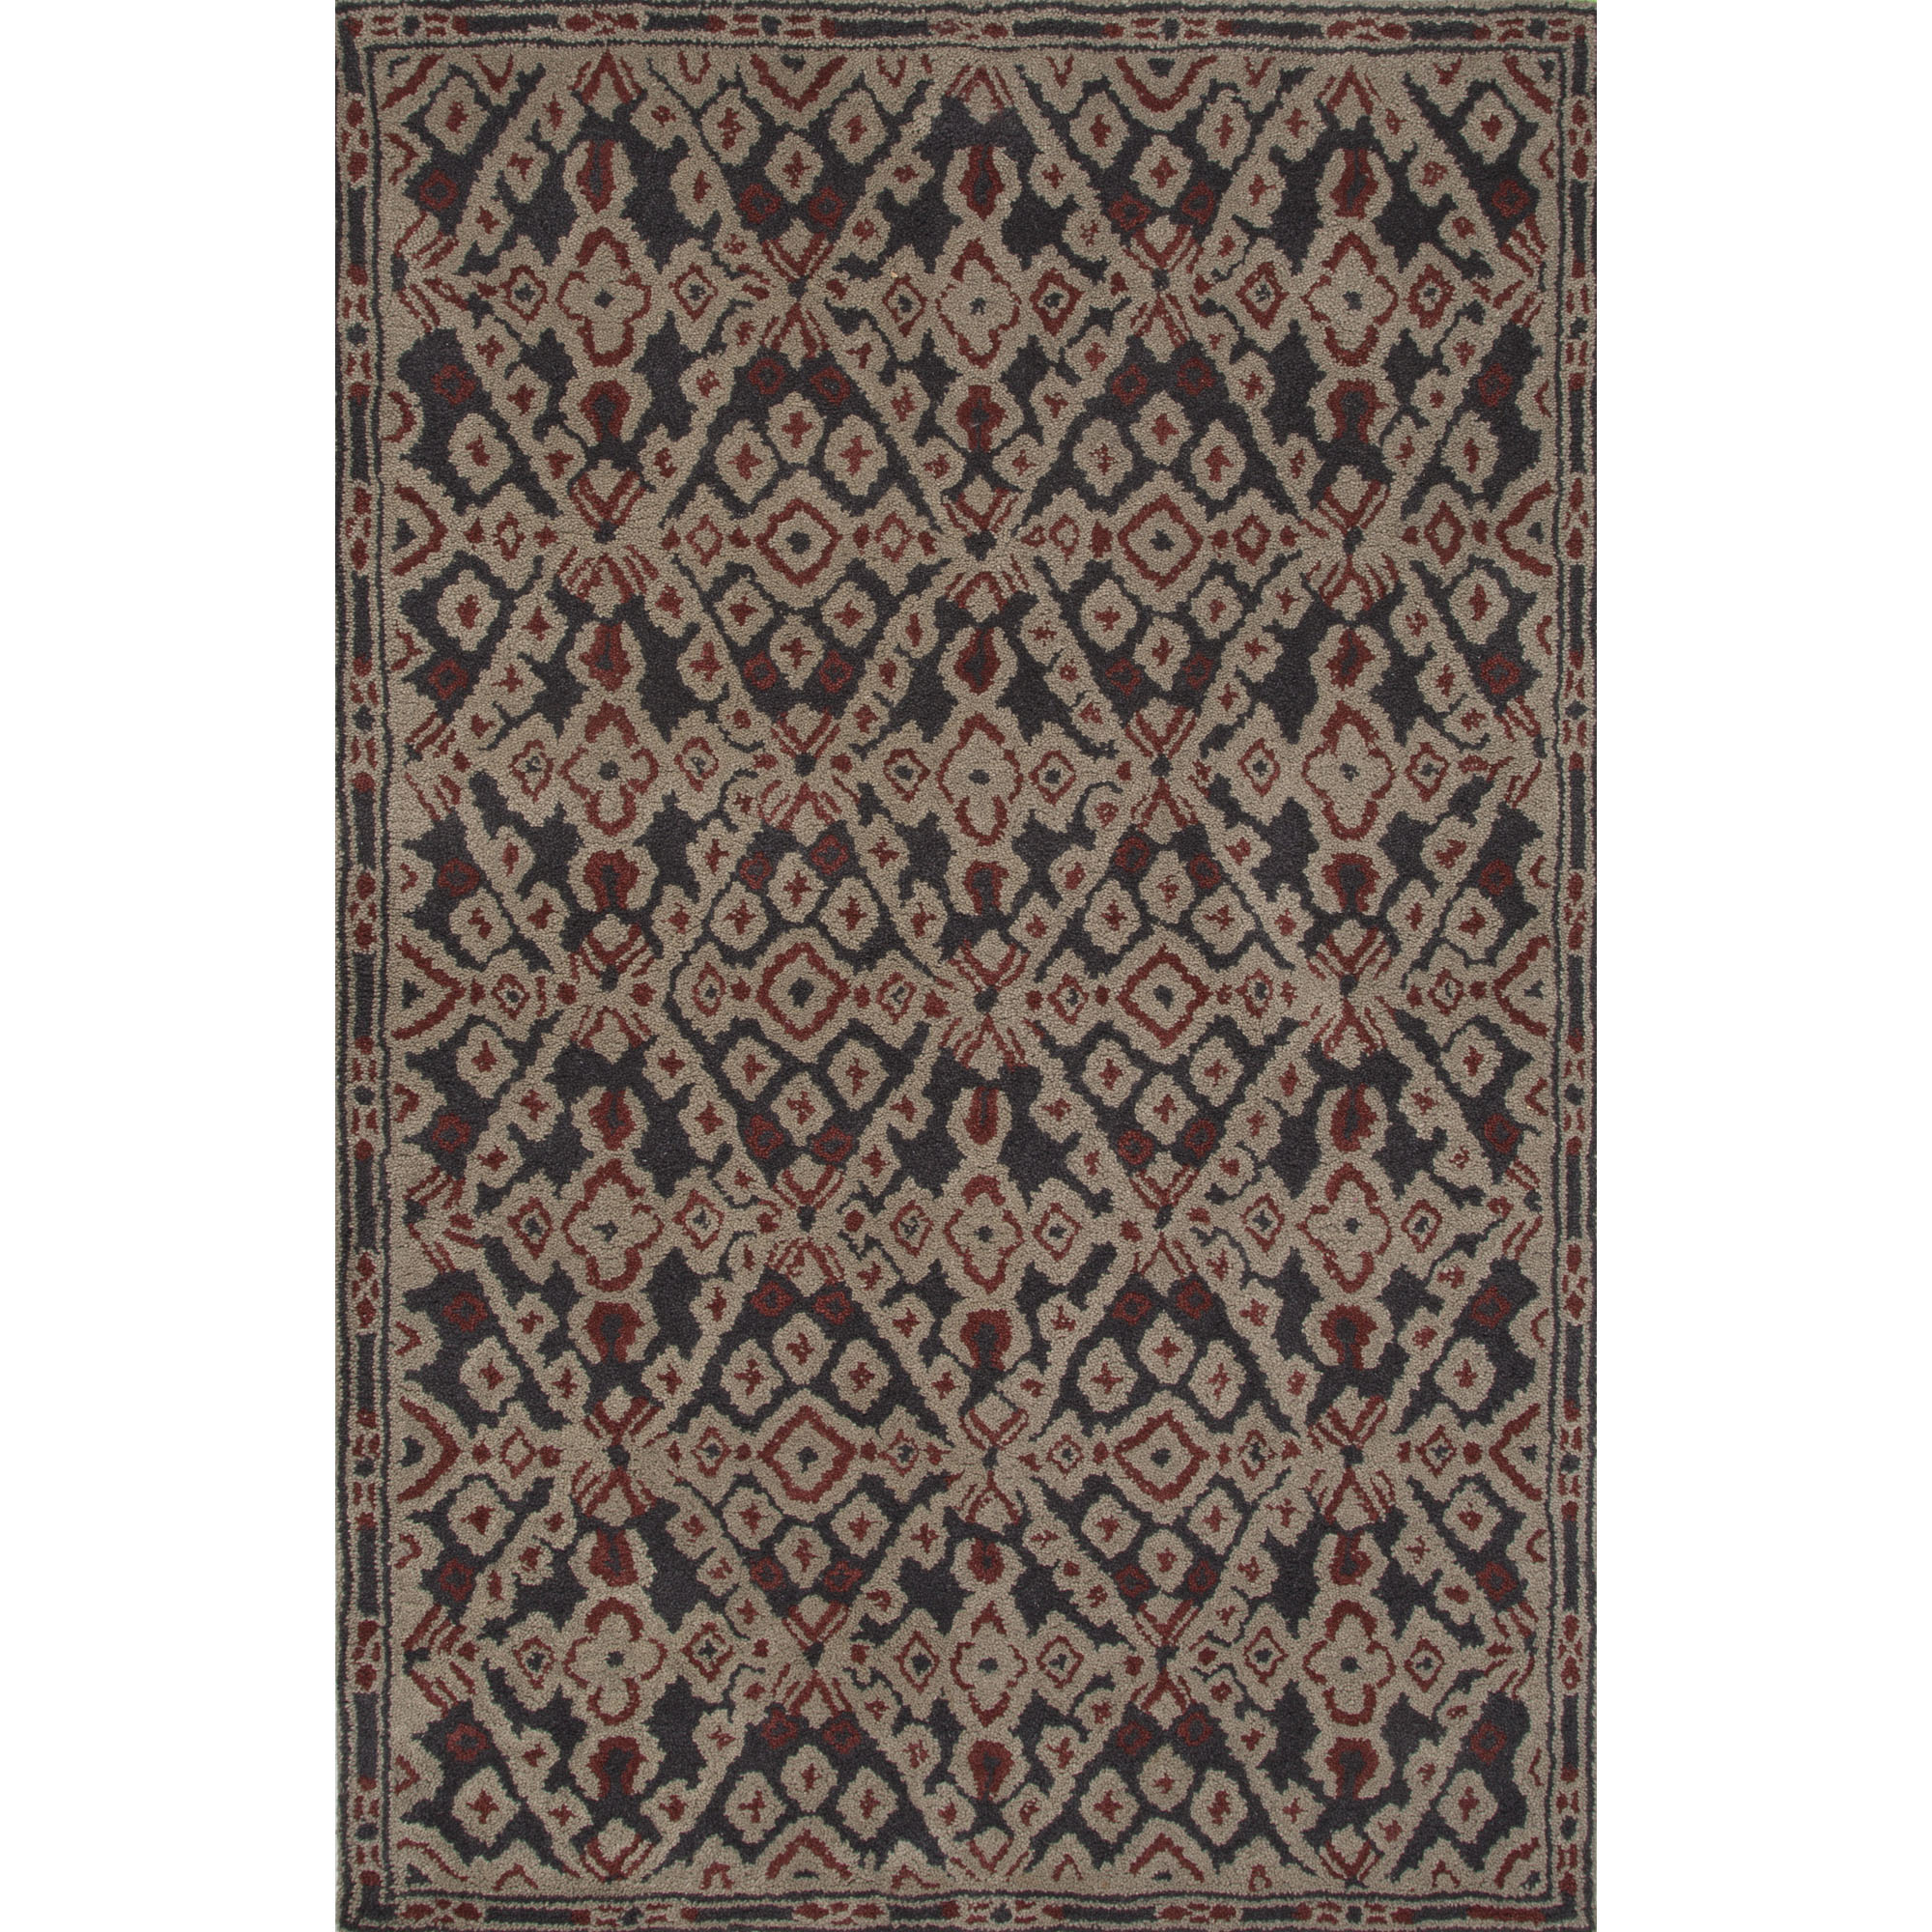 JAIPUR Rugs Traditions Made Modern Tufted 2 x 3 Rug - Item Number: RUG122192